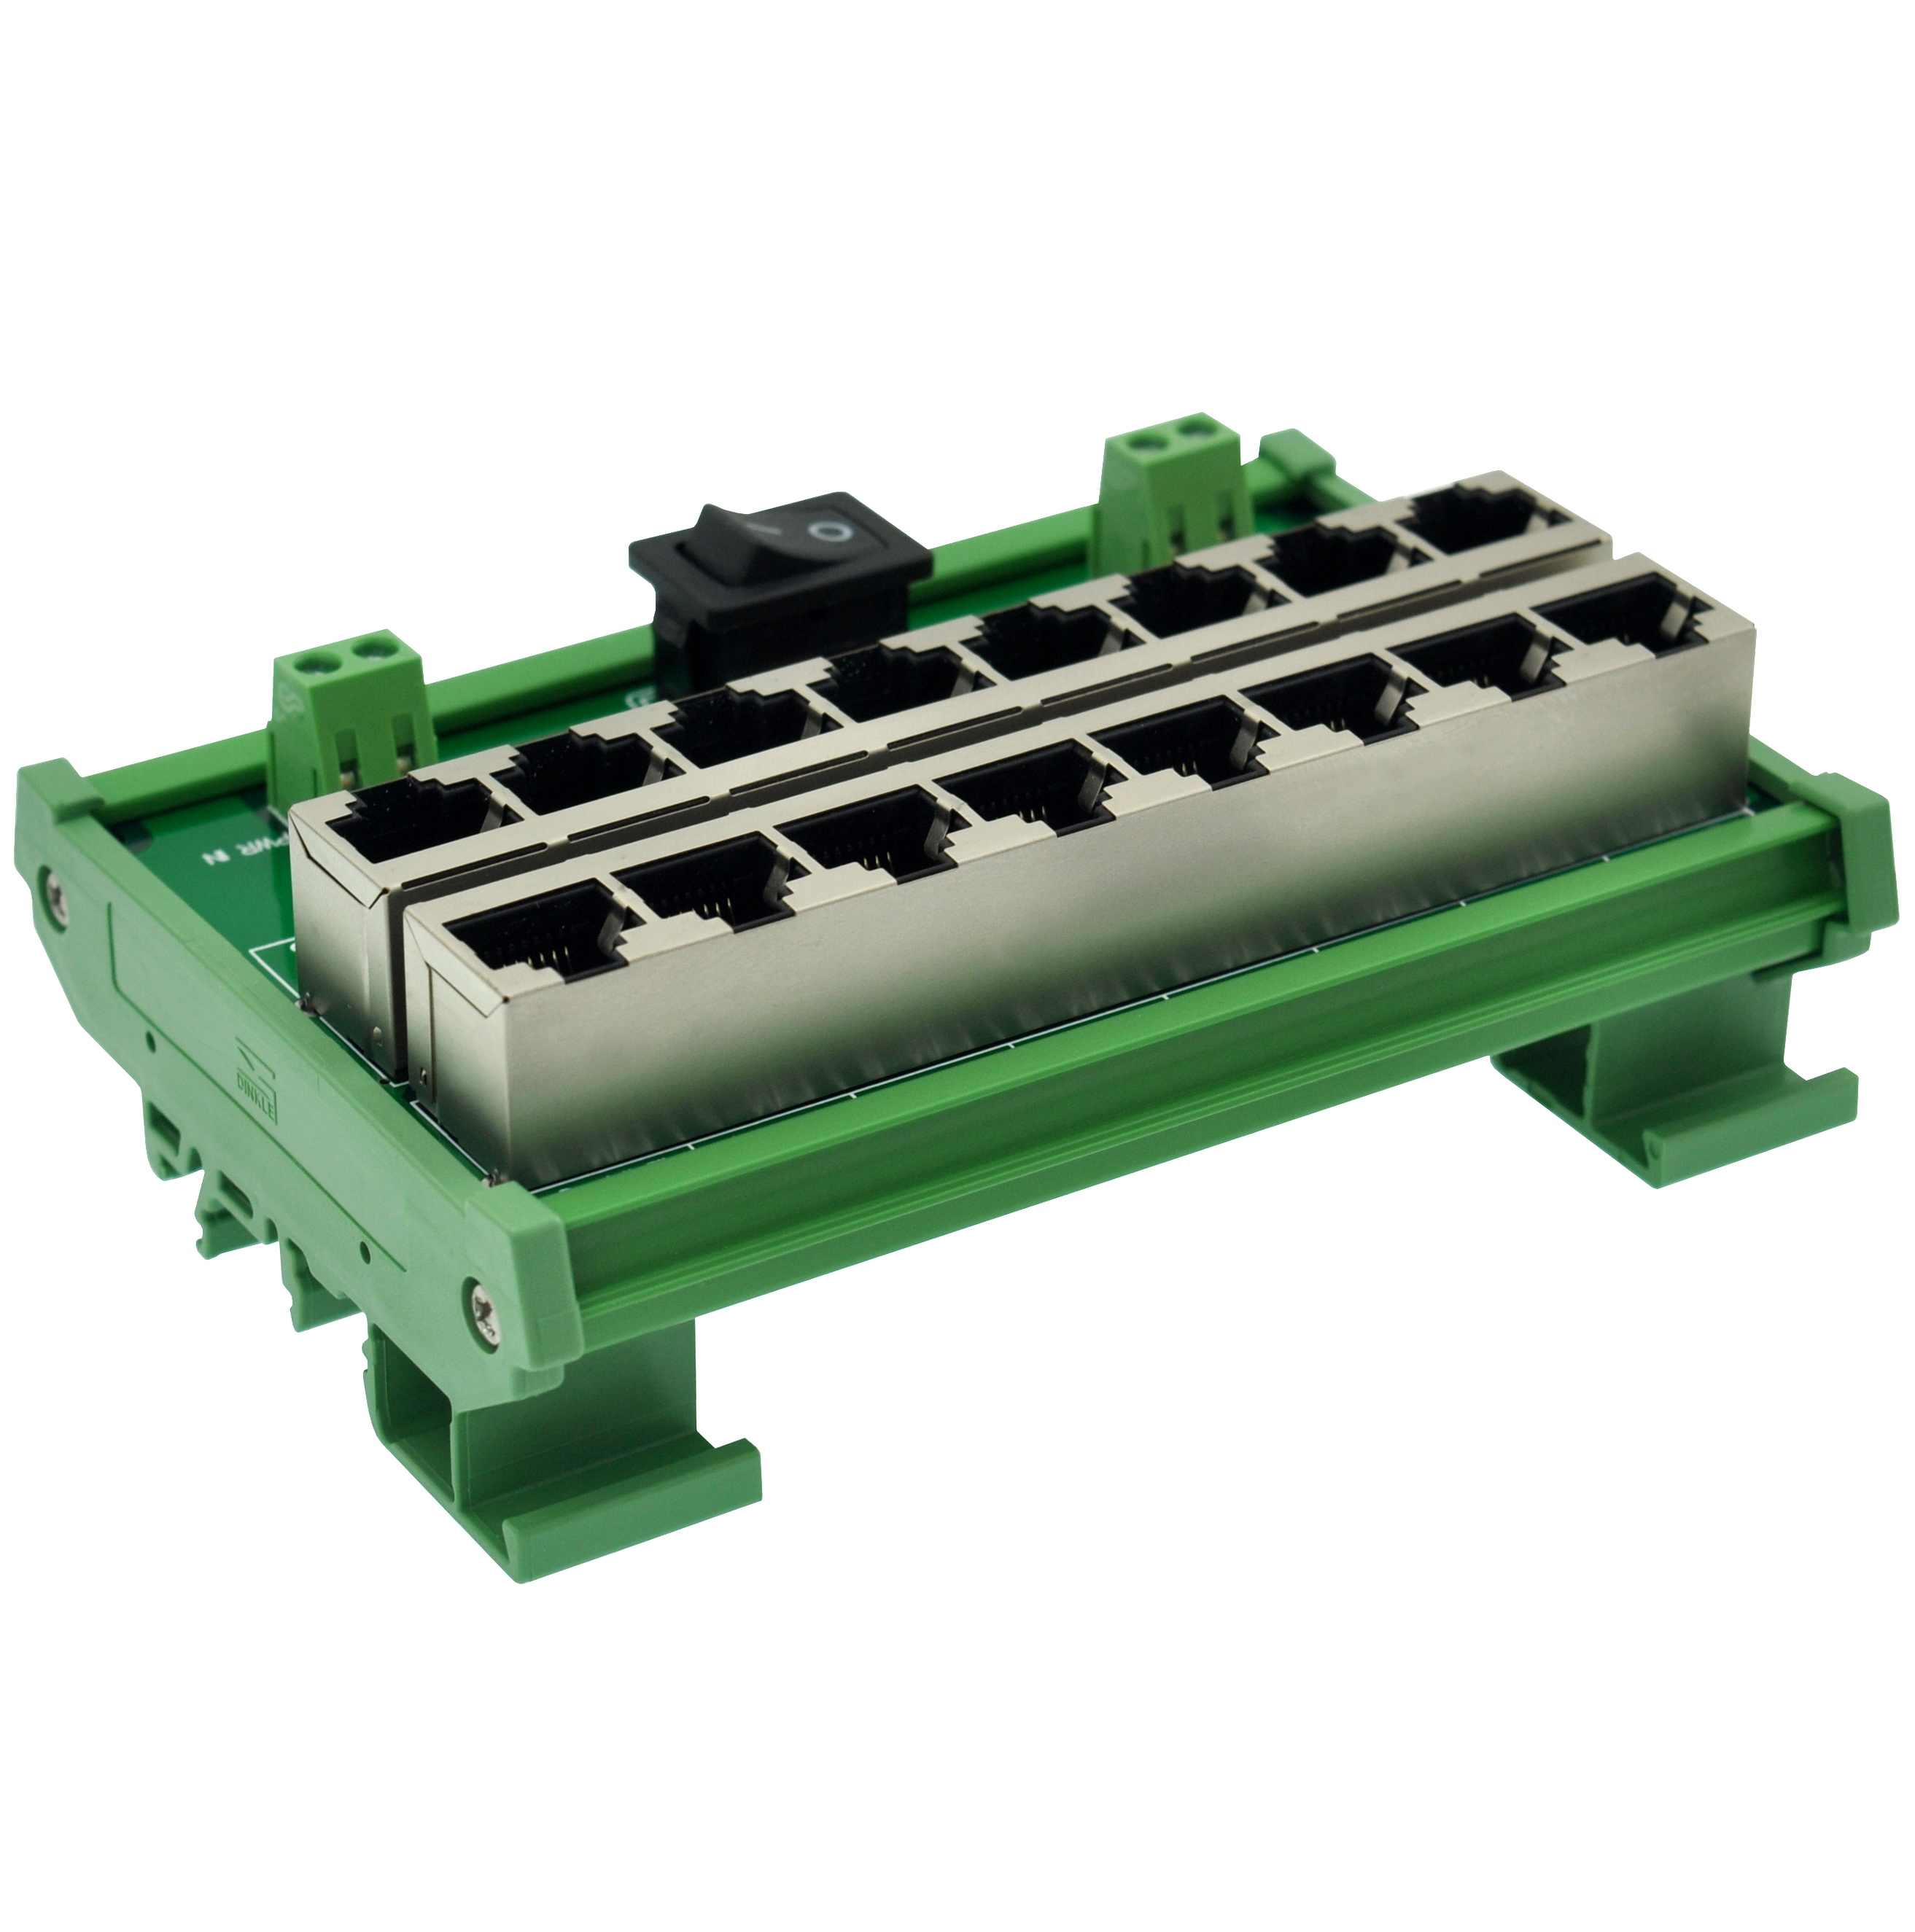 CZH-LABS DIN Rail Mount 8 Ports Passive RJ45 PoE Power Injection Board, Power Over Ethernet Injector Module.